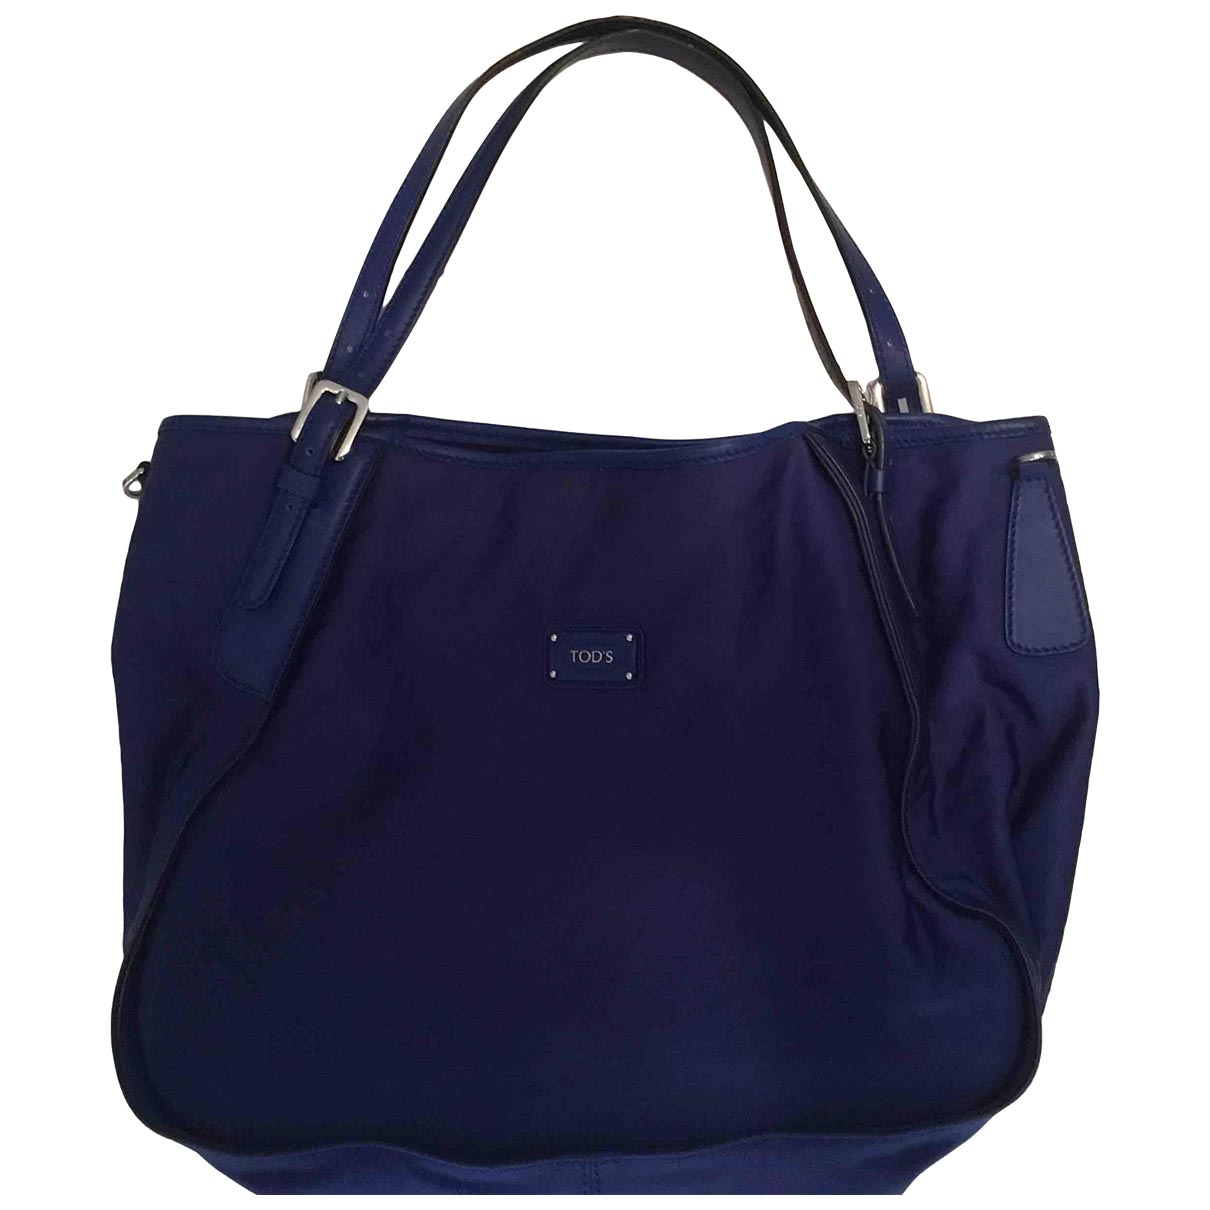 Tod's \N Blue handbag for Women \N